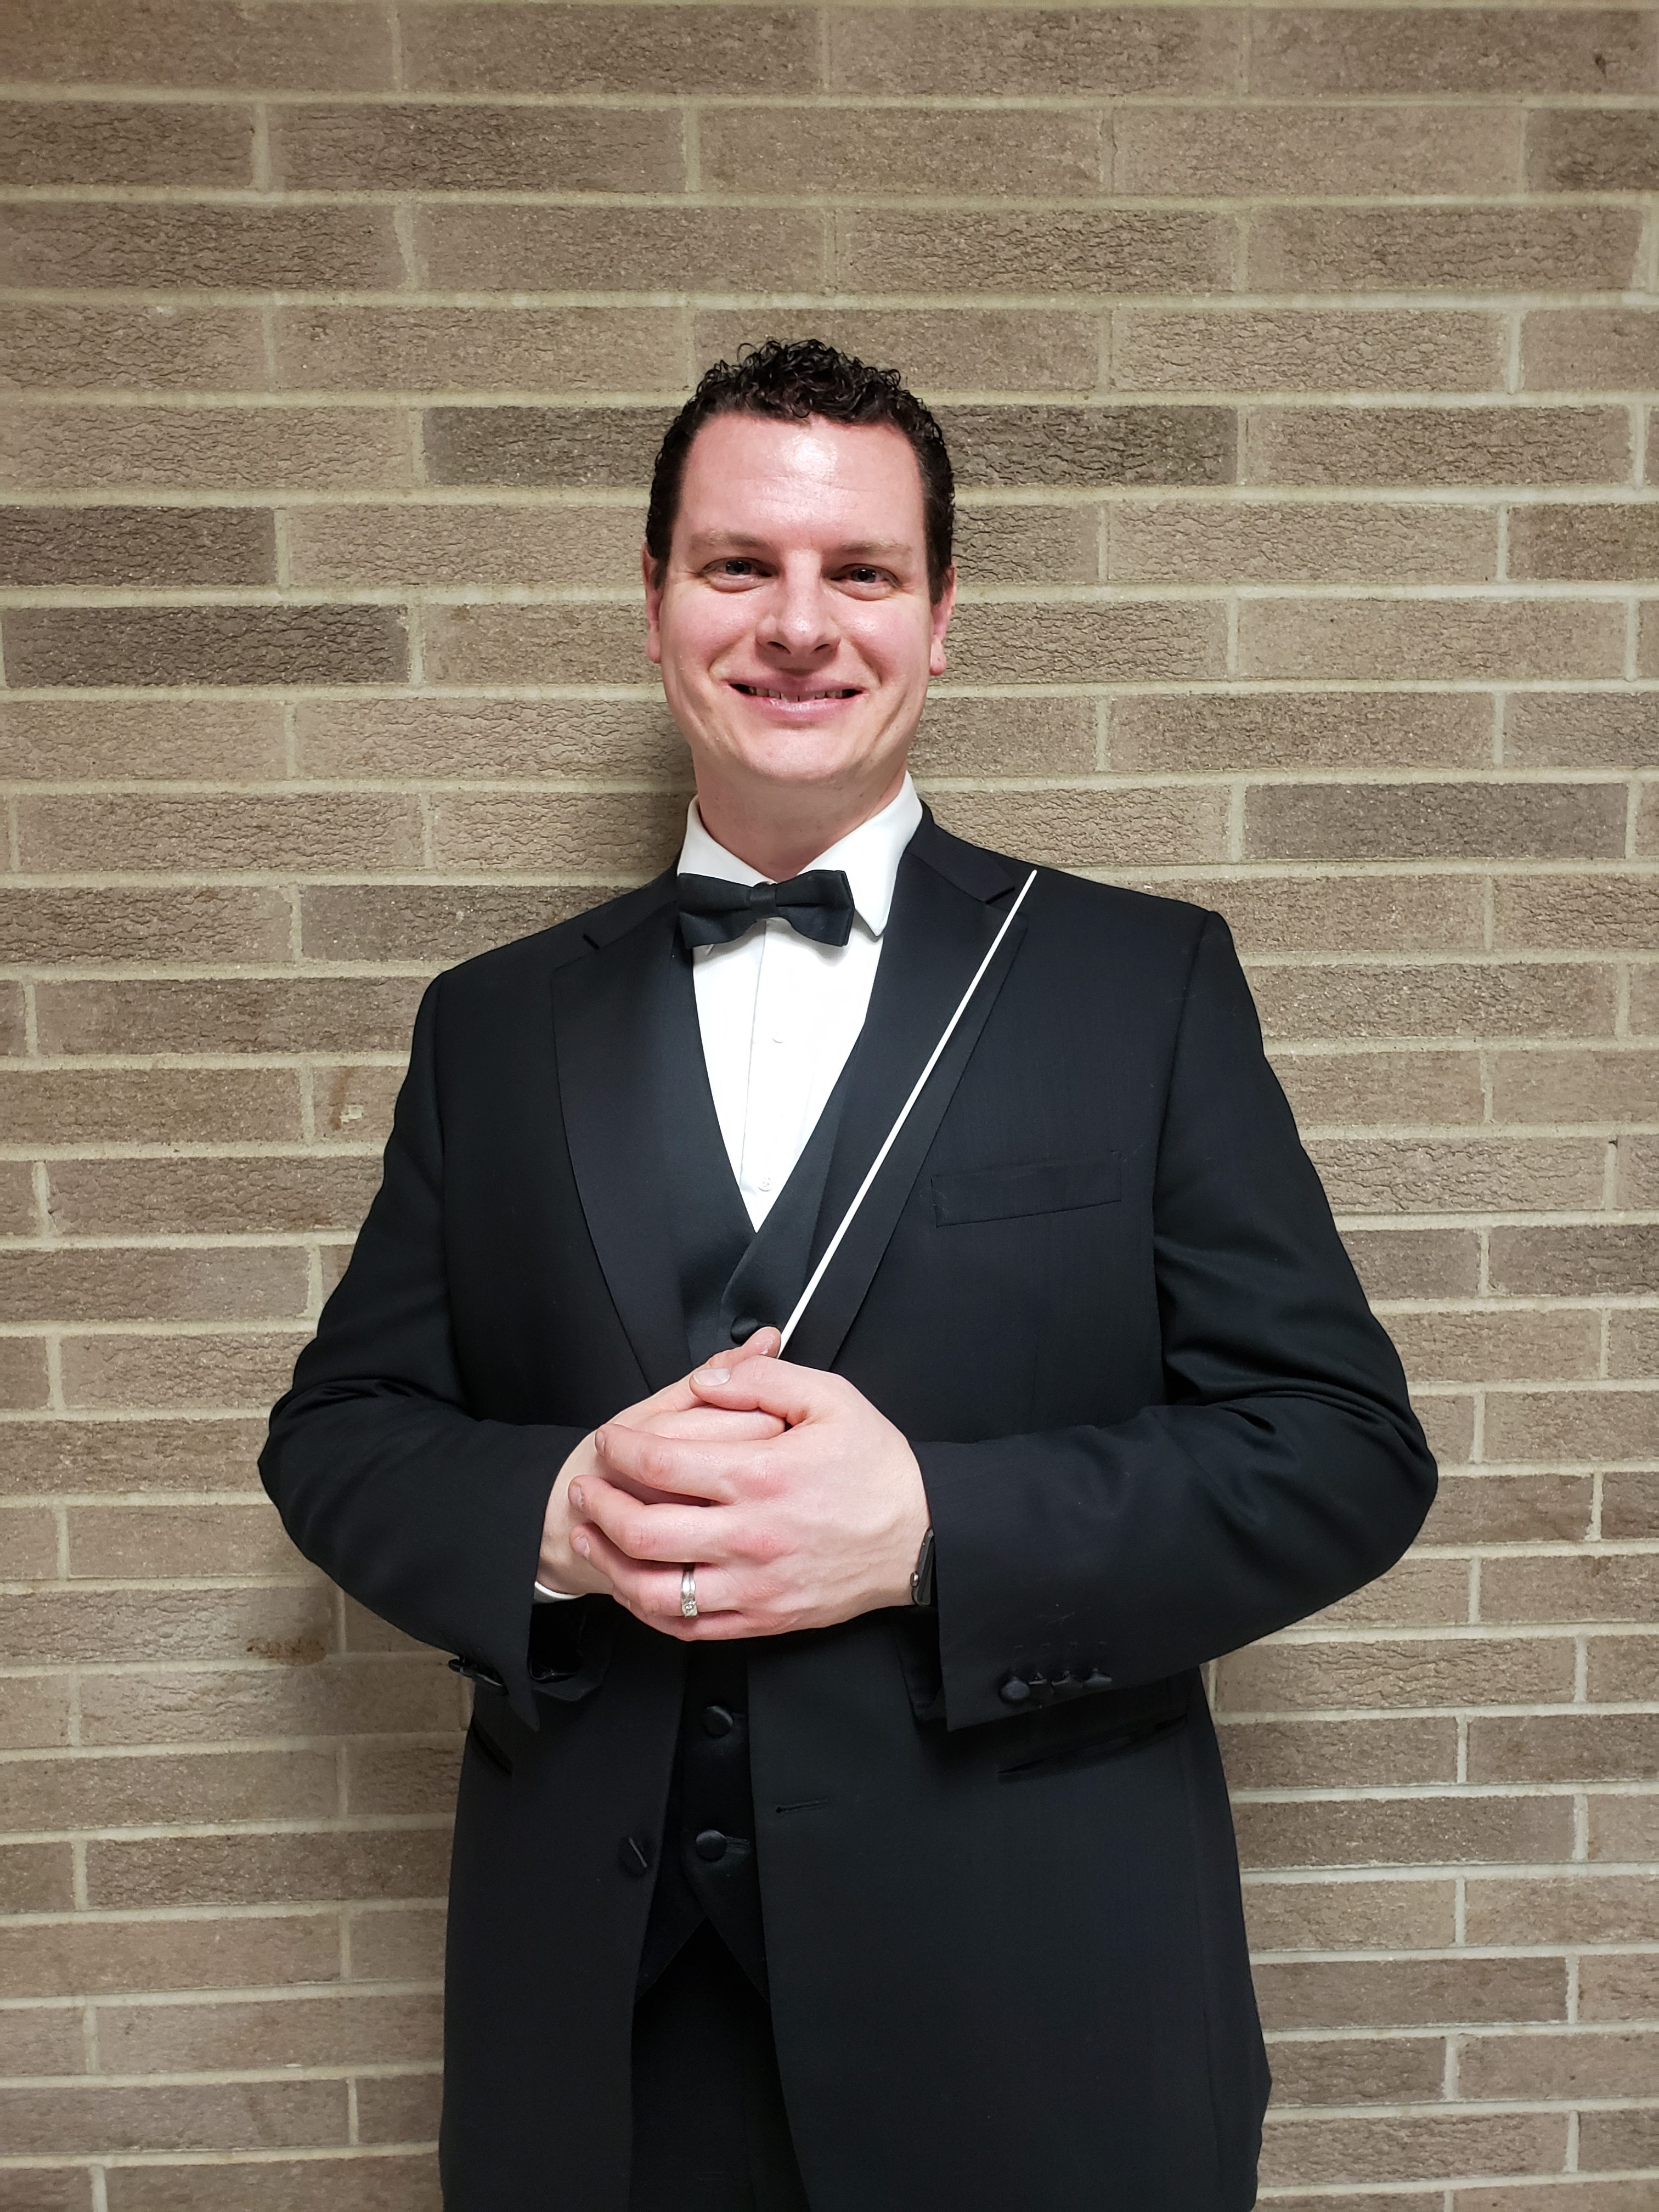 Chris Anderson, Conductor of the FSWE